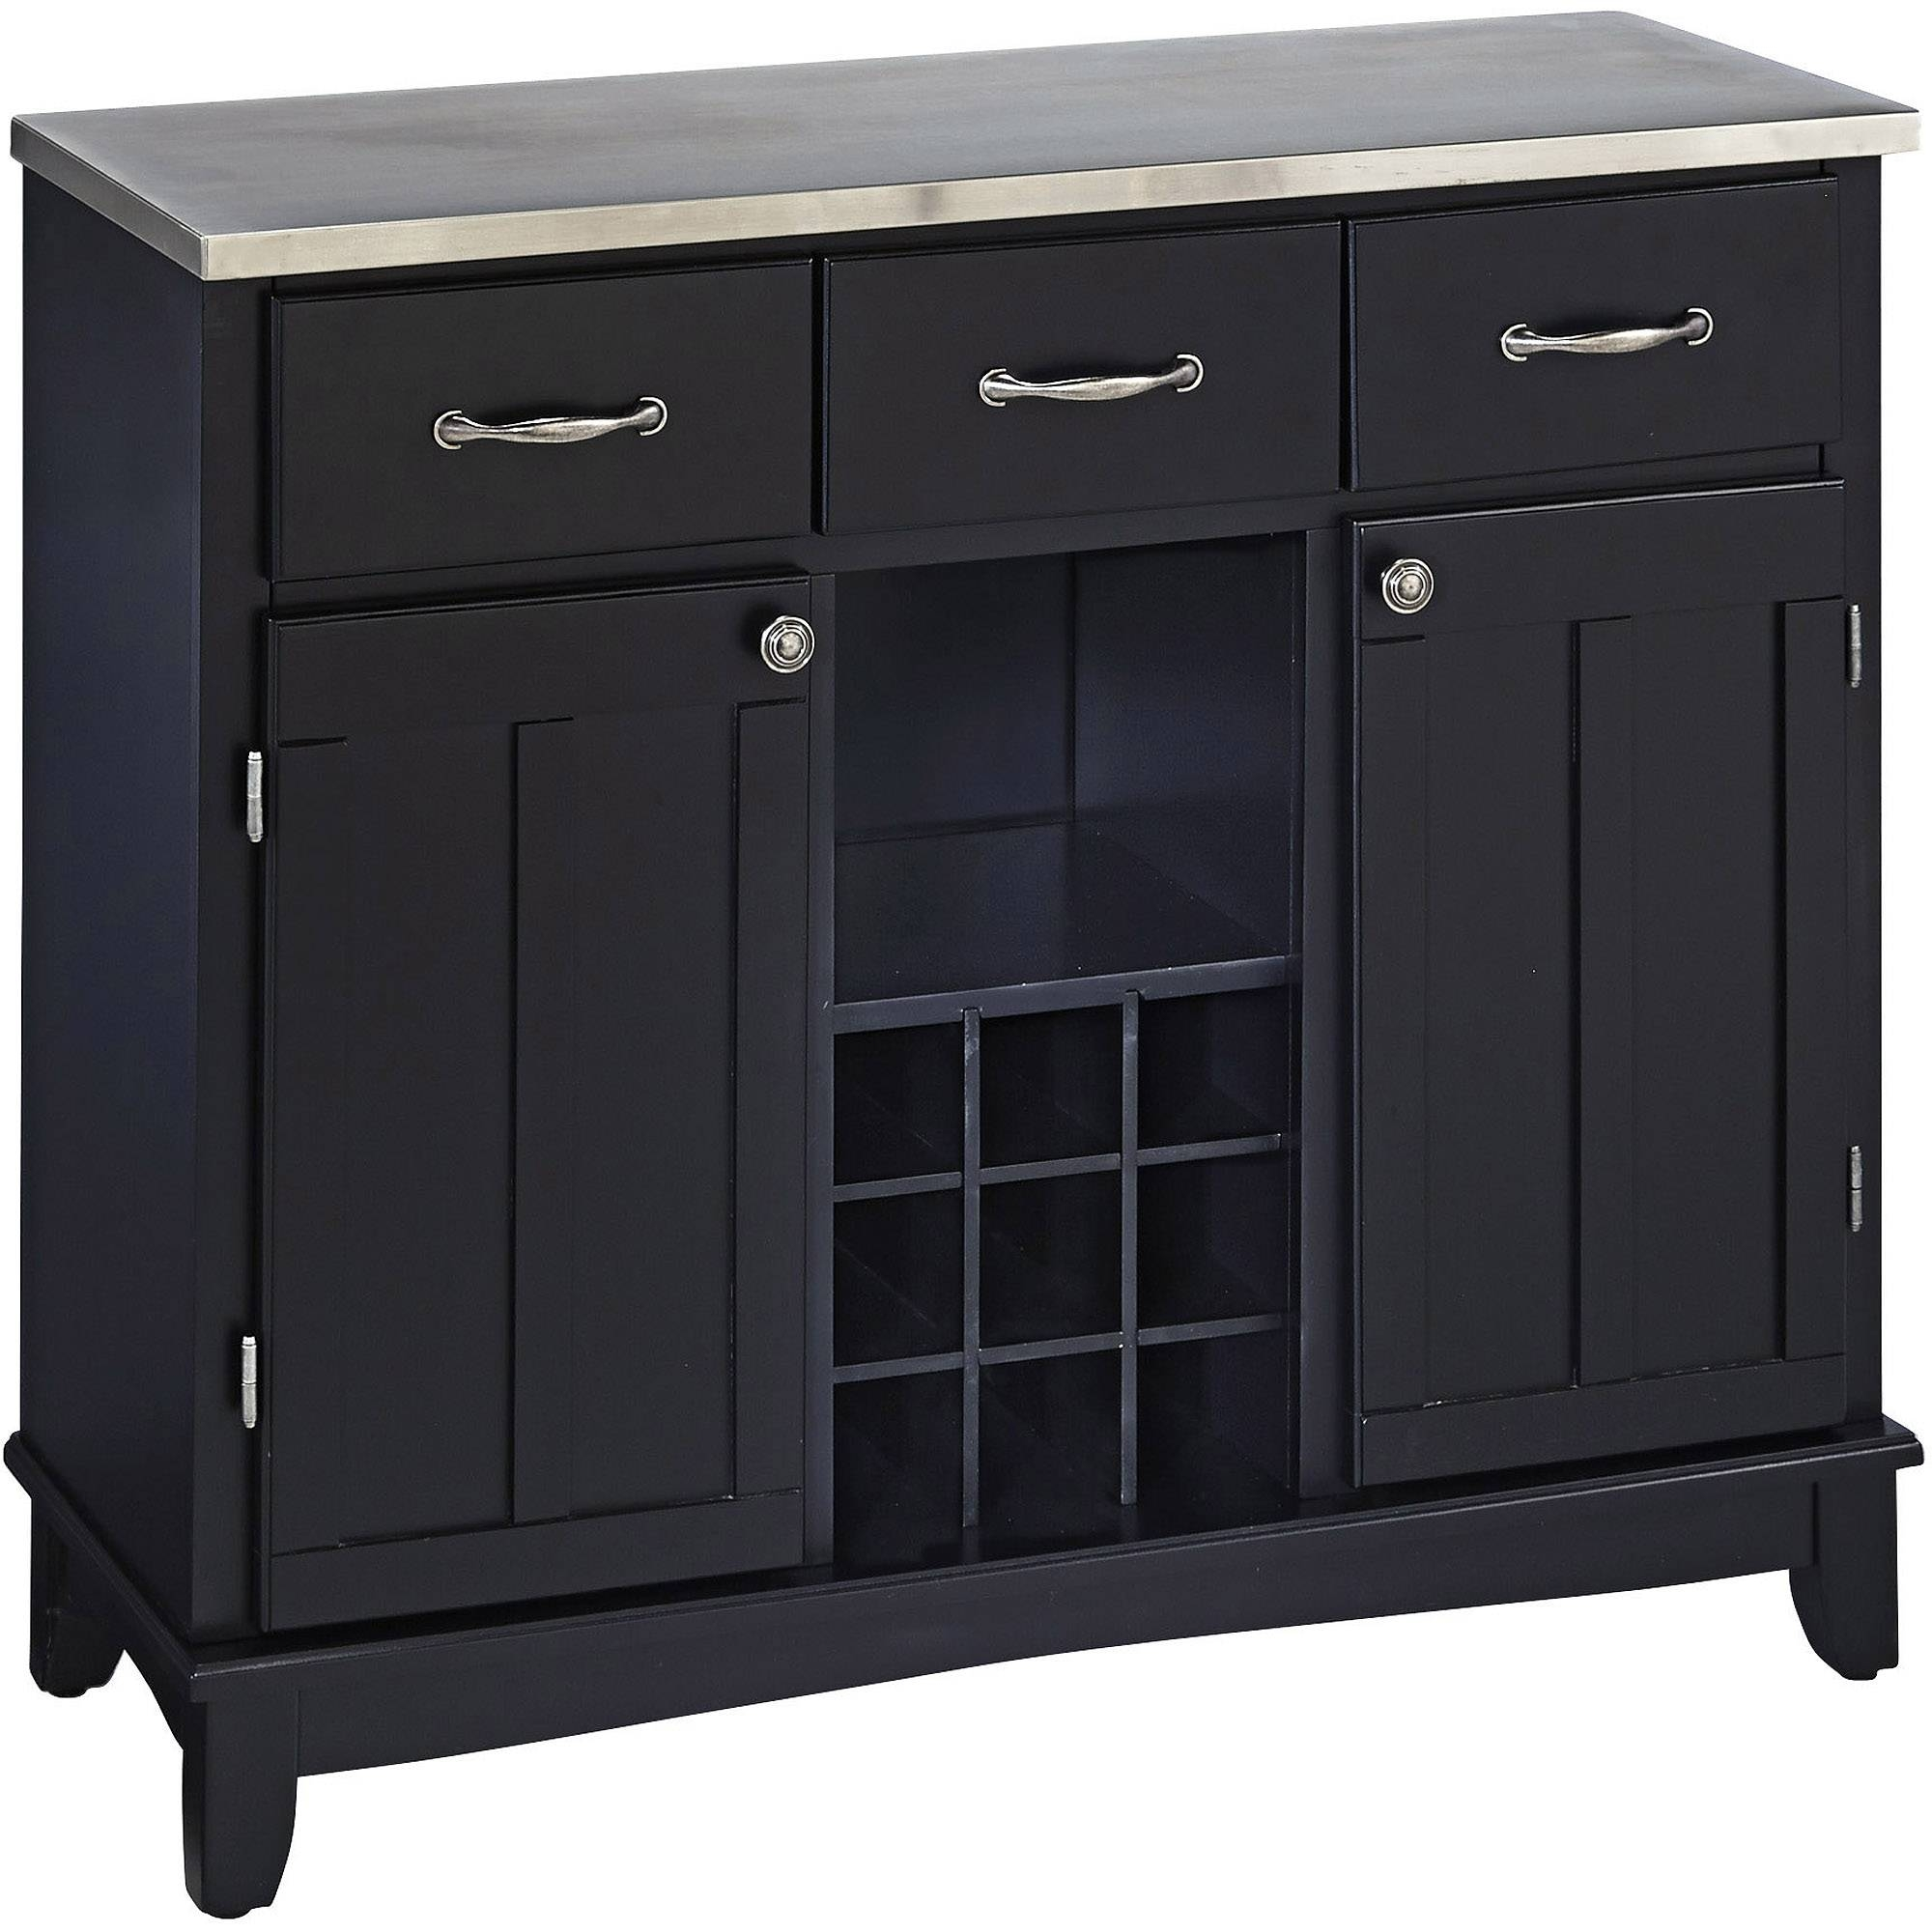 Sideboards & Buffets – Walmart With Regard To Black And Silver Sideboards (#13 of 15)